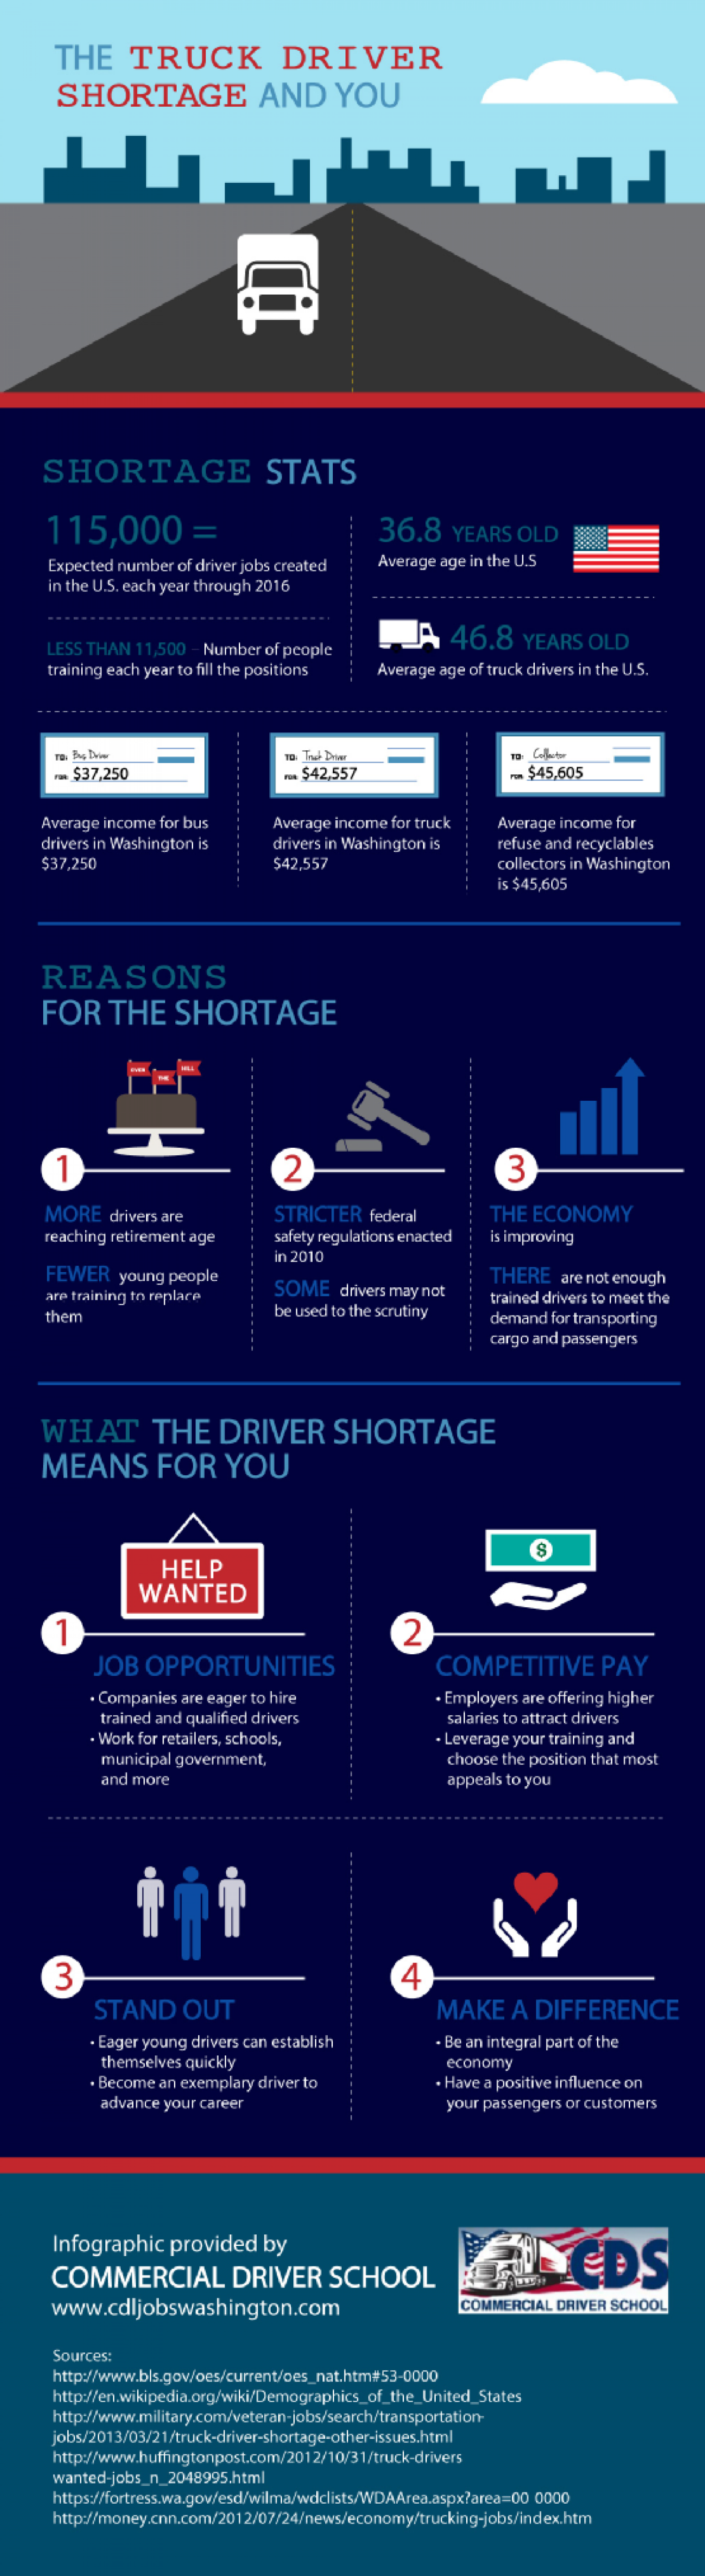 The Truck Driver Shortage and You Infographic